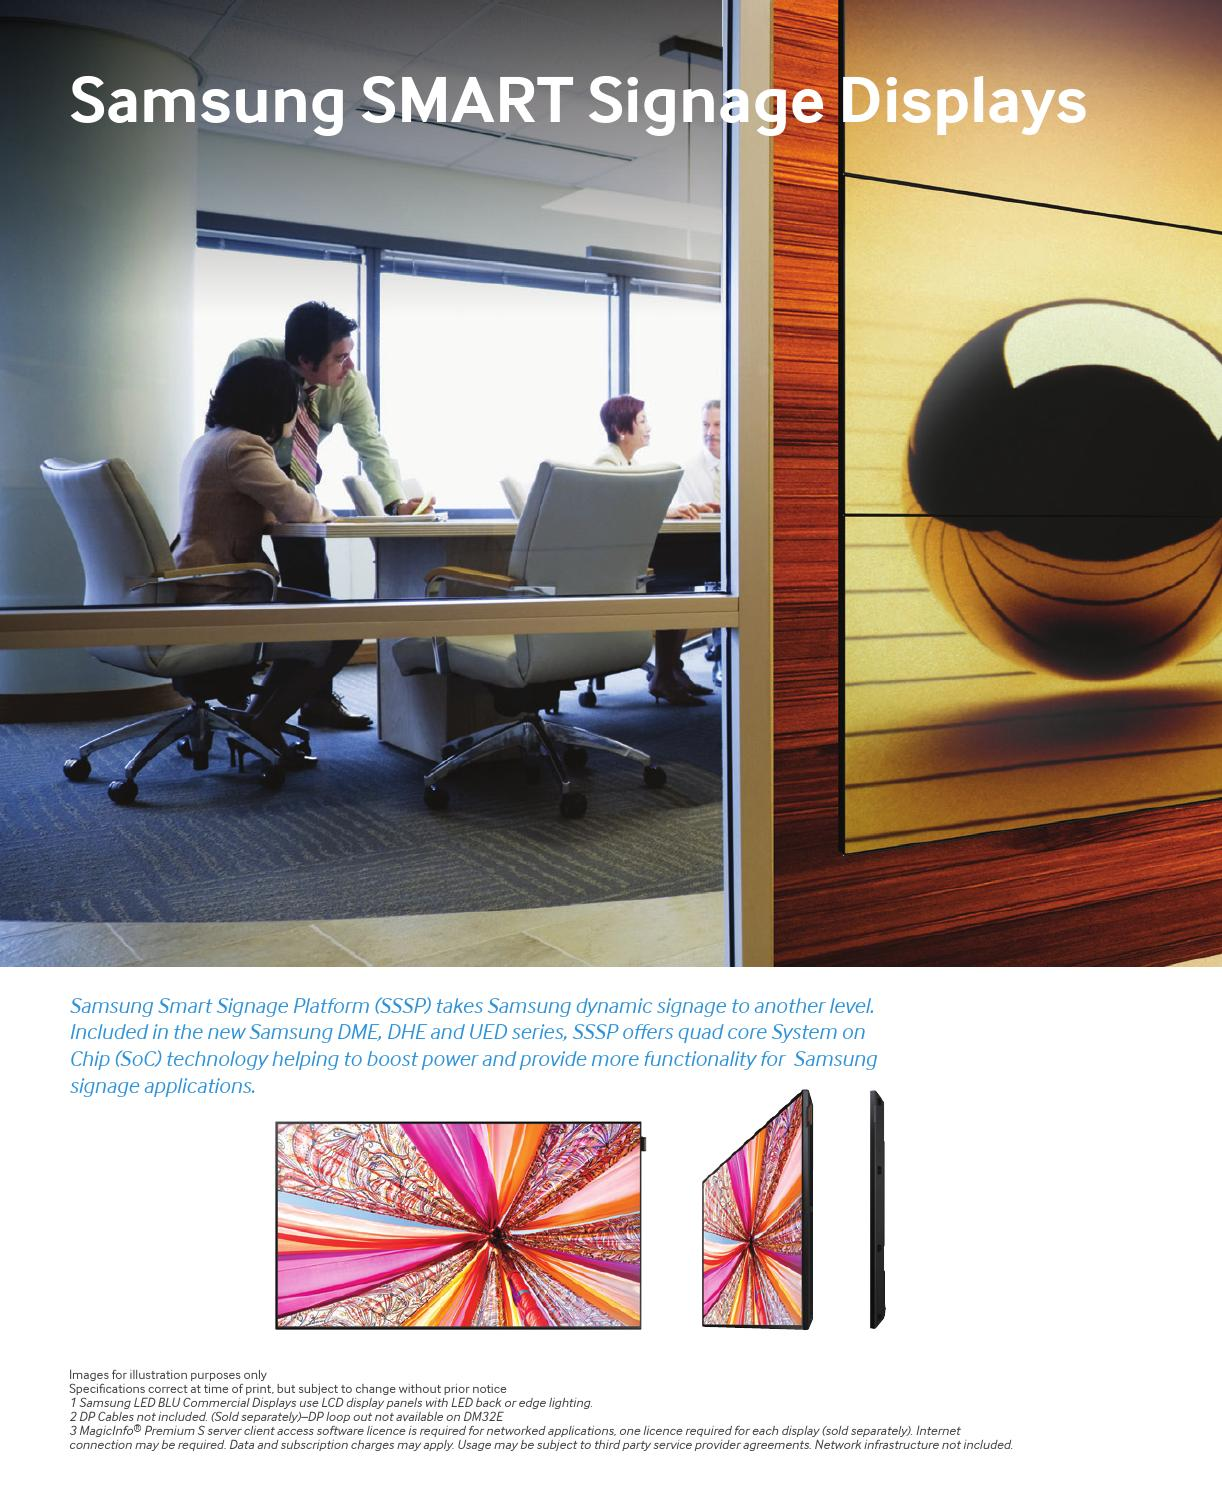 Av asia pacific magazine the new samsung smart signage platform av - Av Asia Pacific Magazine The New Samsung Smart Signage Platform Av 1